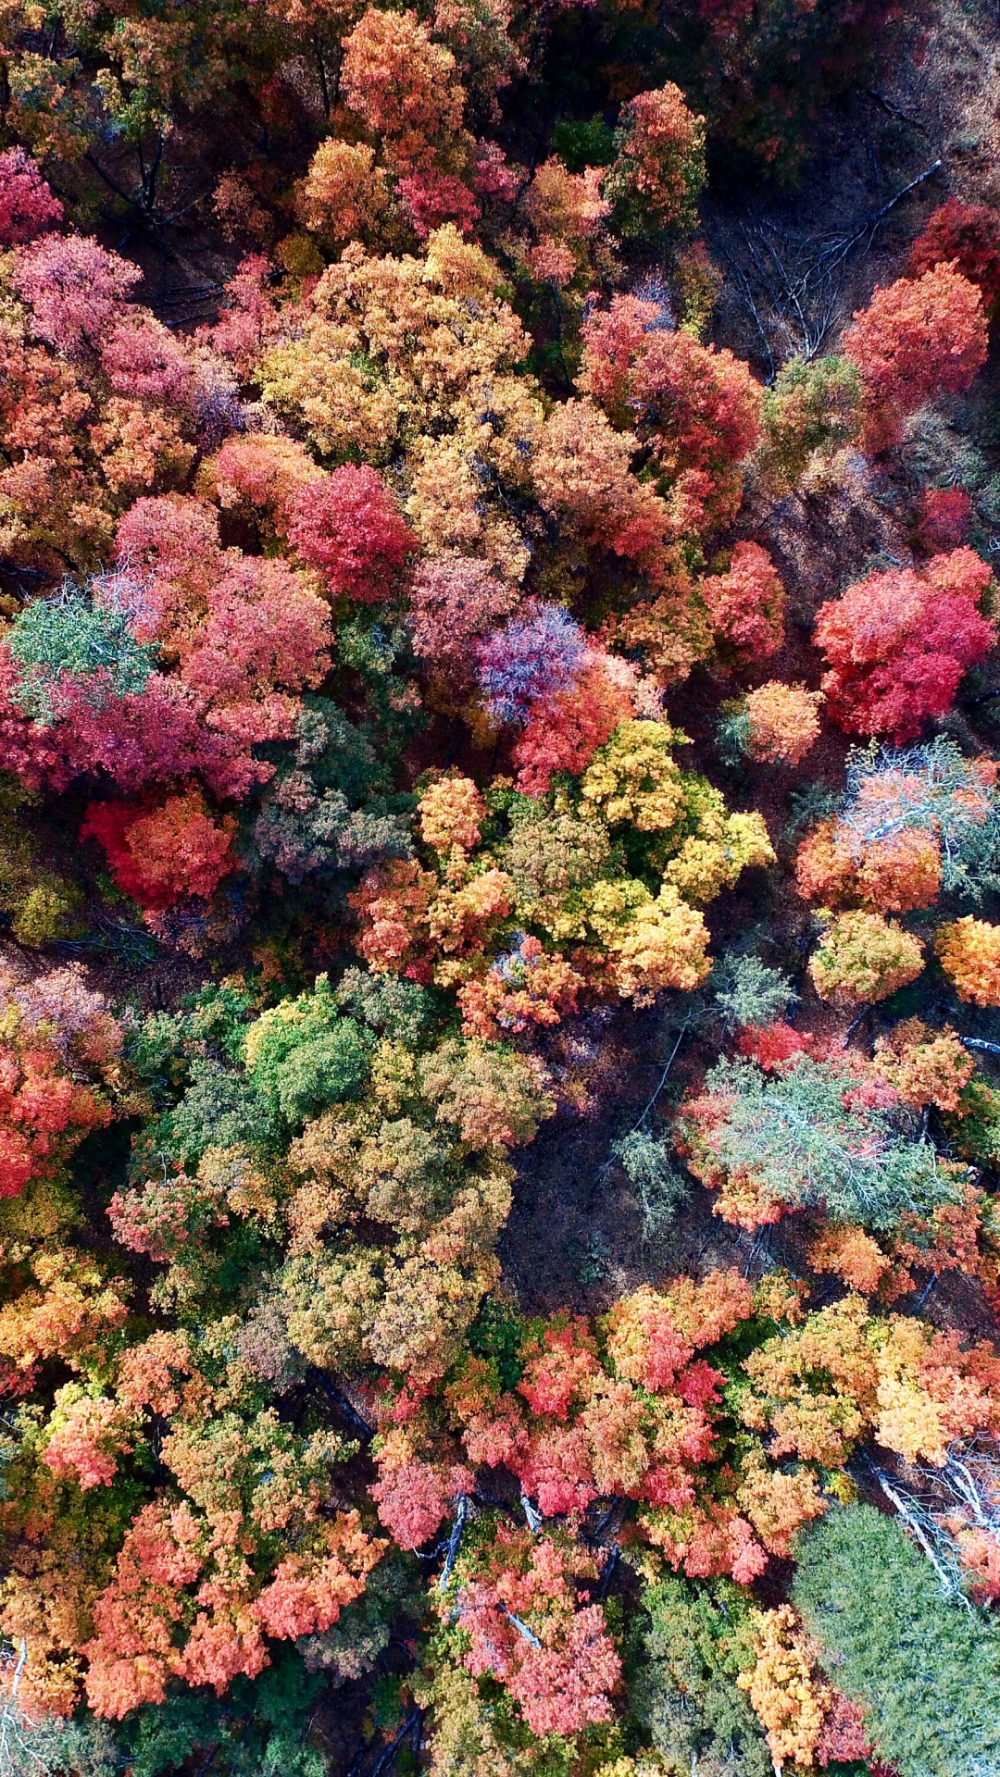 Colors of Fall iPhone Wallpaper #falliphonewallpaper Forest-leaf-fall-aerial-iPhone-wallpaper #falliphonewallpaper Colors of Fall iPhone Wallpaper #falliphonewallpaper Forest-leaf-fall-aerial-iPhone-wallpaper #falliphonewallpaper